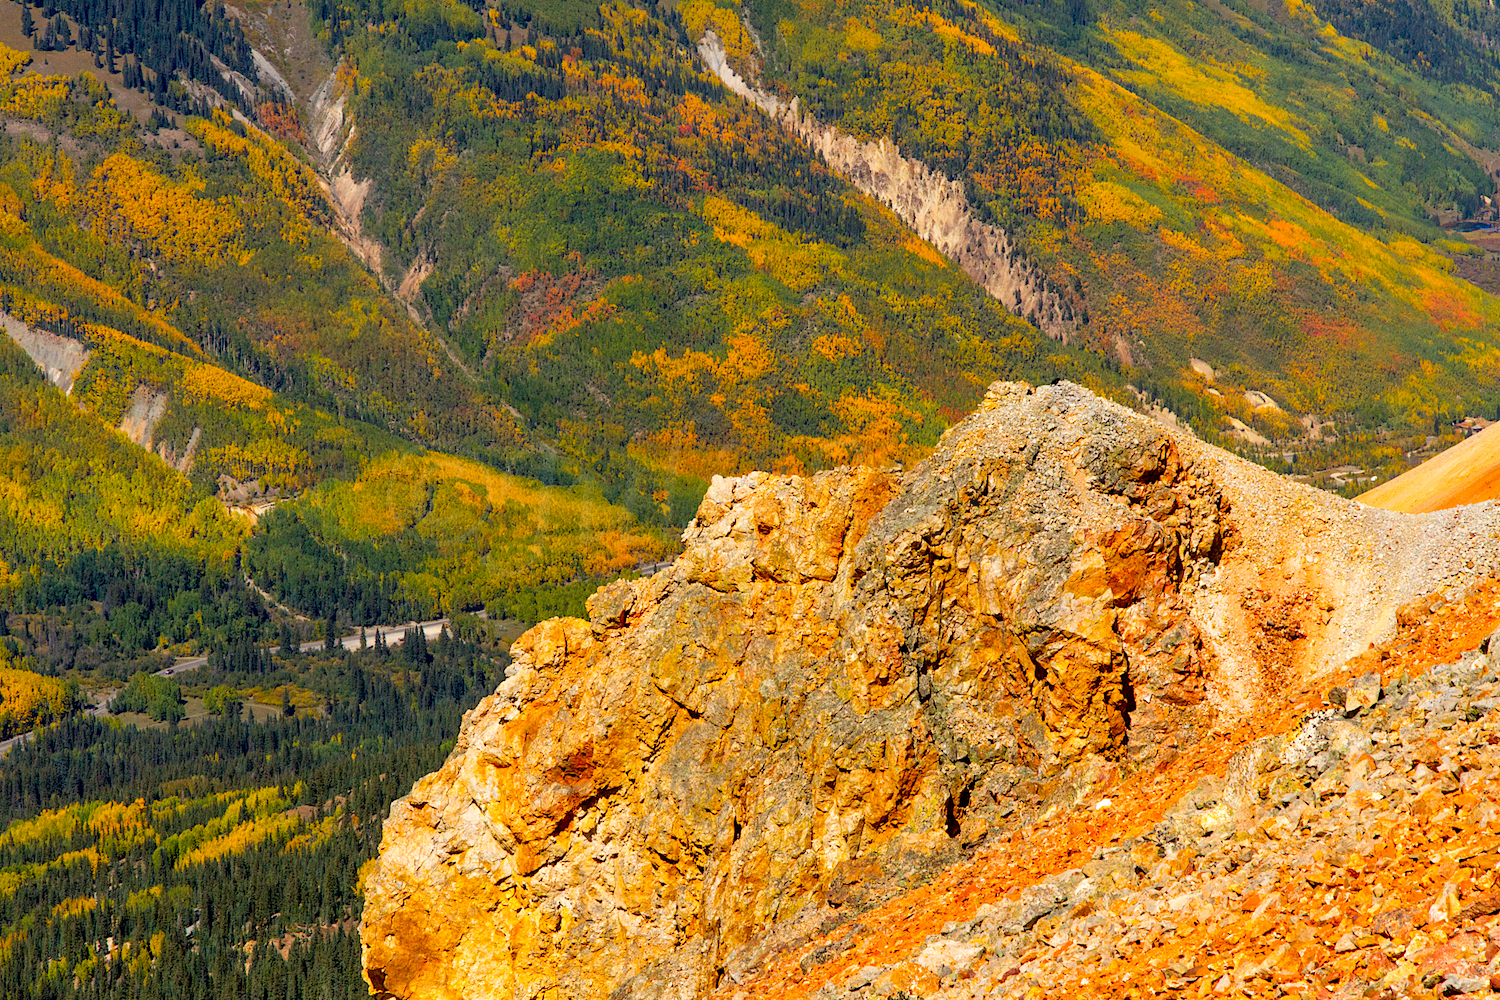 Red Mountain #3, Image # 6173